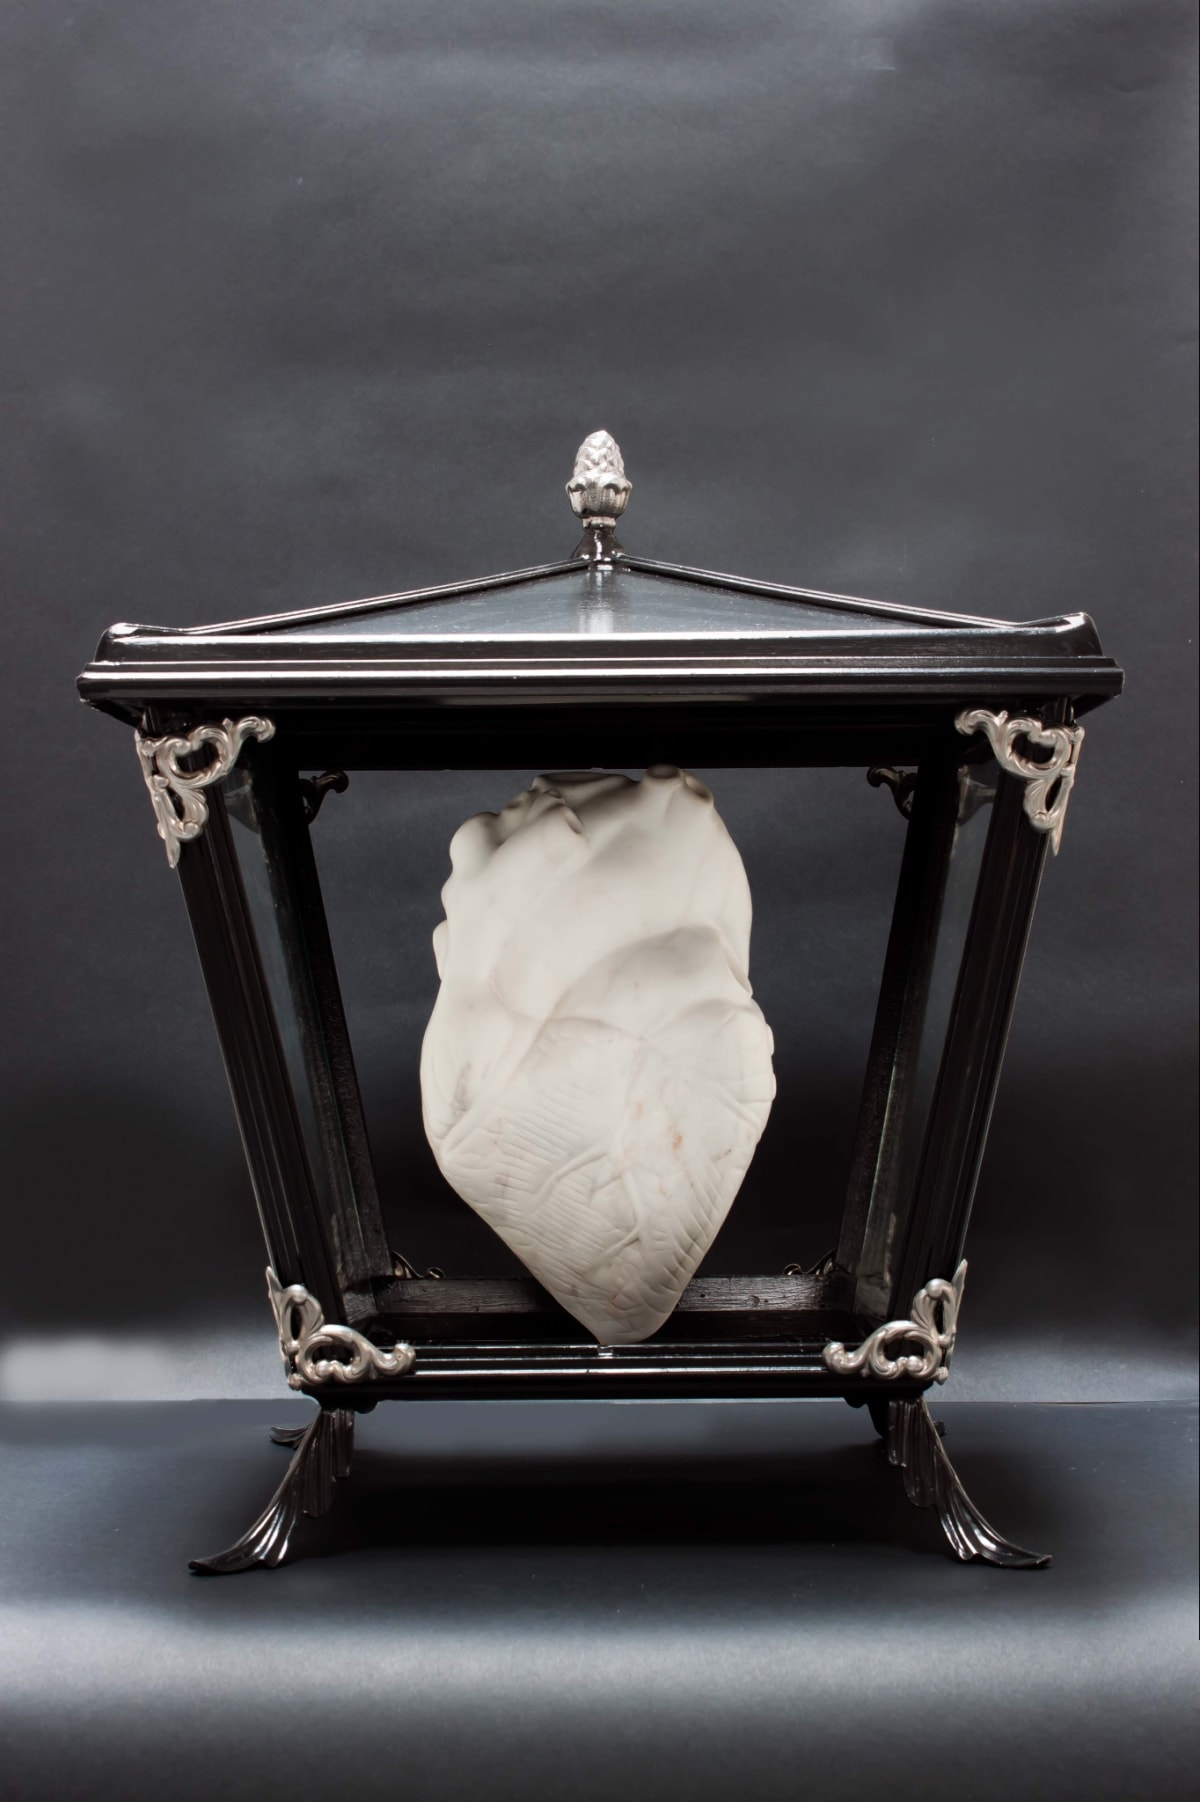 Michelangelo Galliani Heart / Per te il mio Cuore (Heart / My Heart for you), 2001/2018 Statuario marble from Carrara, steel, and wood. 55 x 40 x 40 cm (21.7 x 15.7 x 15.7 in)